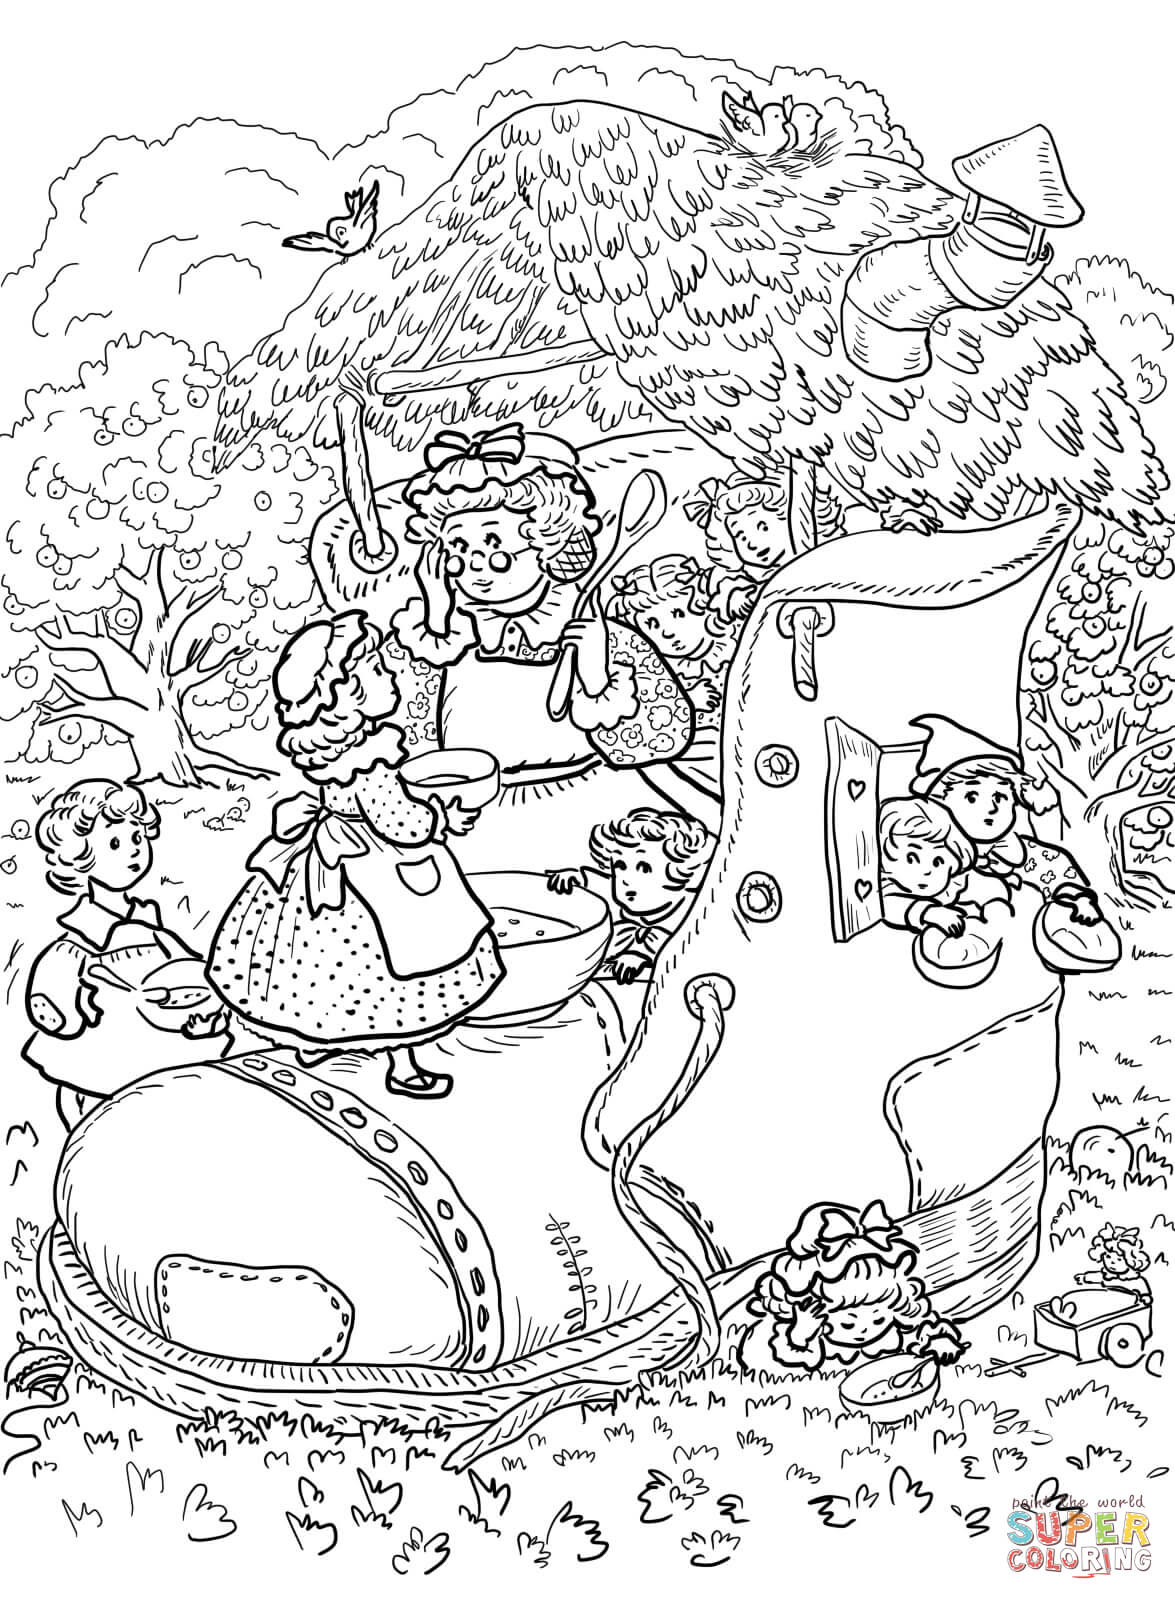 Old Woman Who Lived In A Shoe Coloring Page